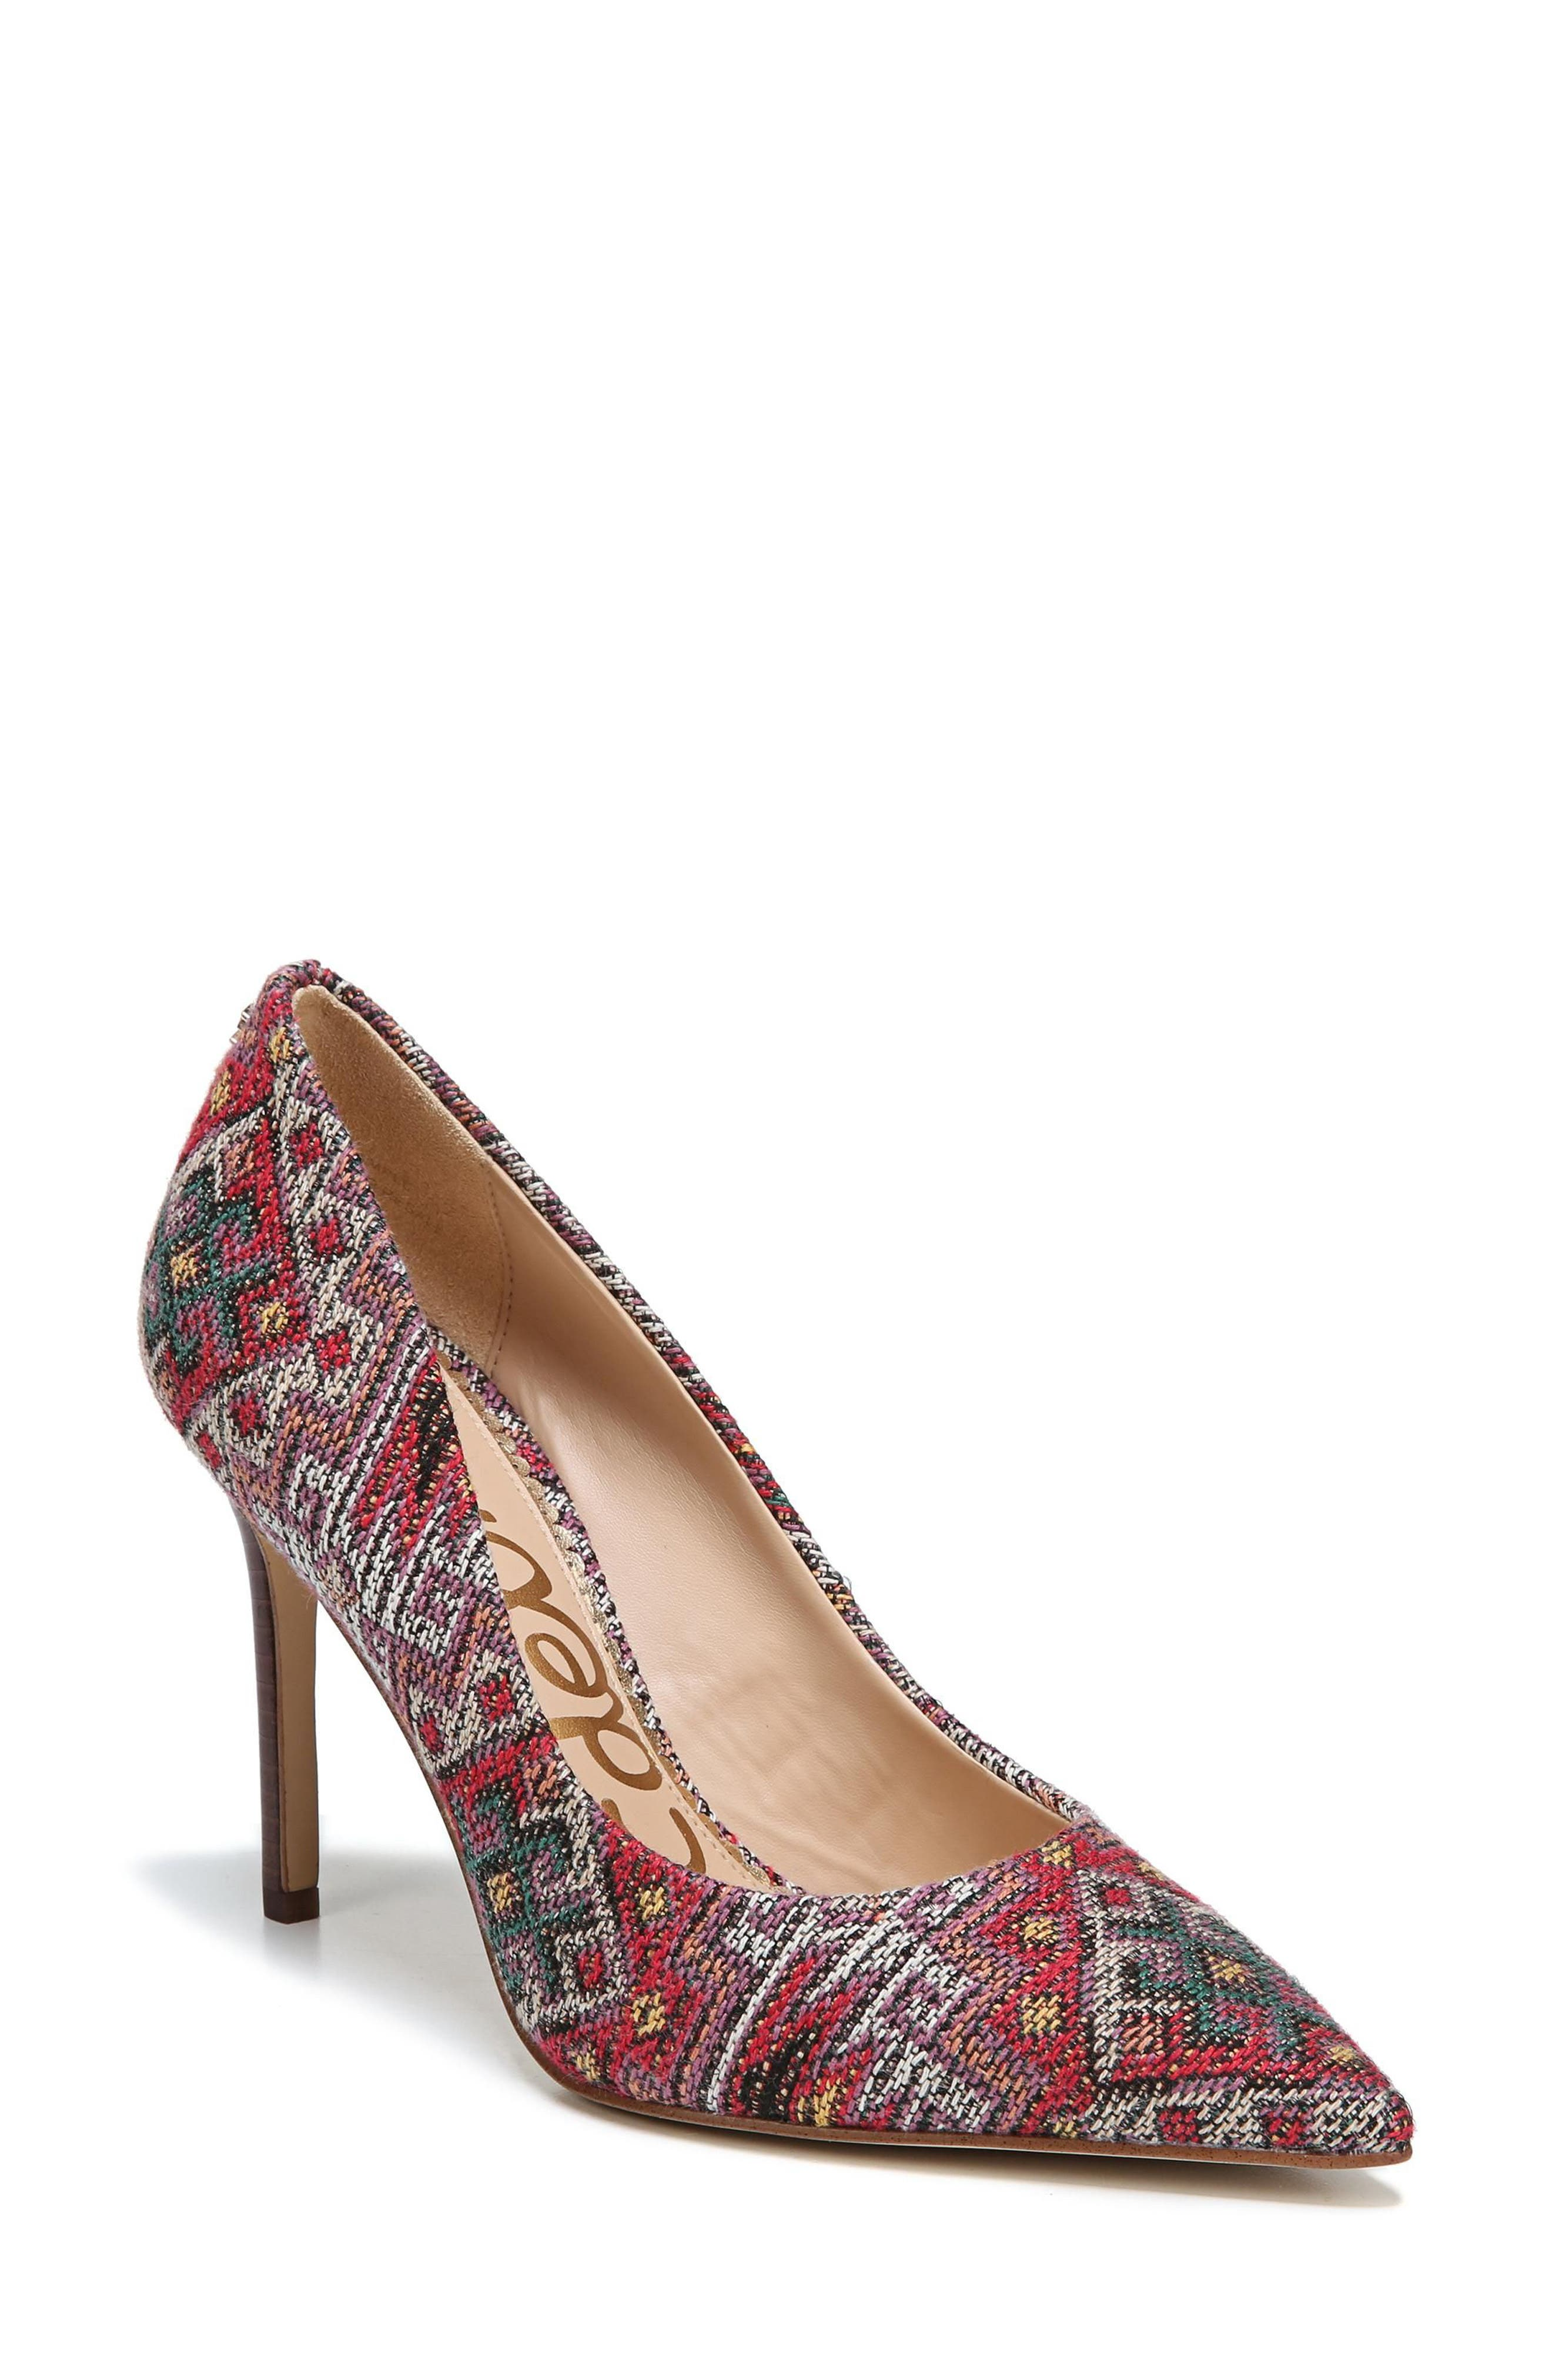 Chloé Leather Snakeskin-Accented Pumps 2015 online cheap free shipping buy cheap largest supplier u8UIrpj